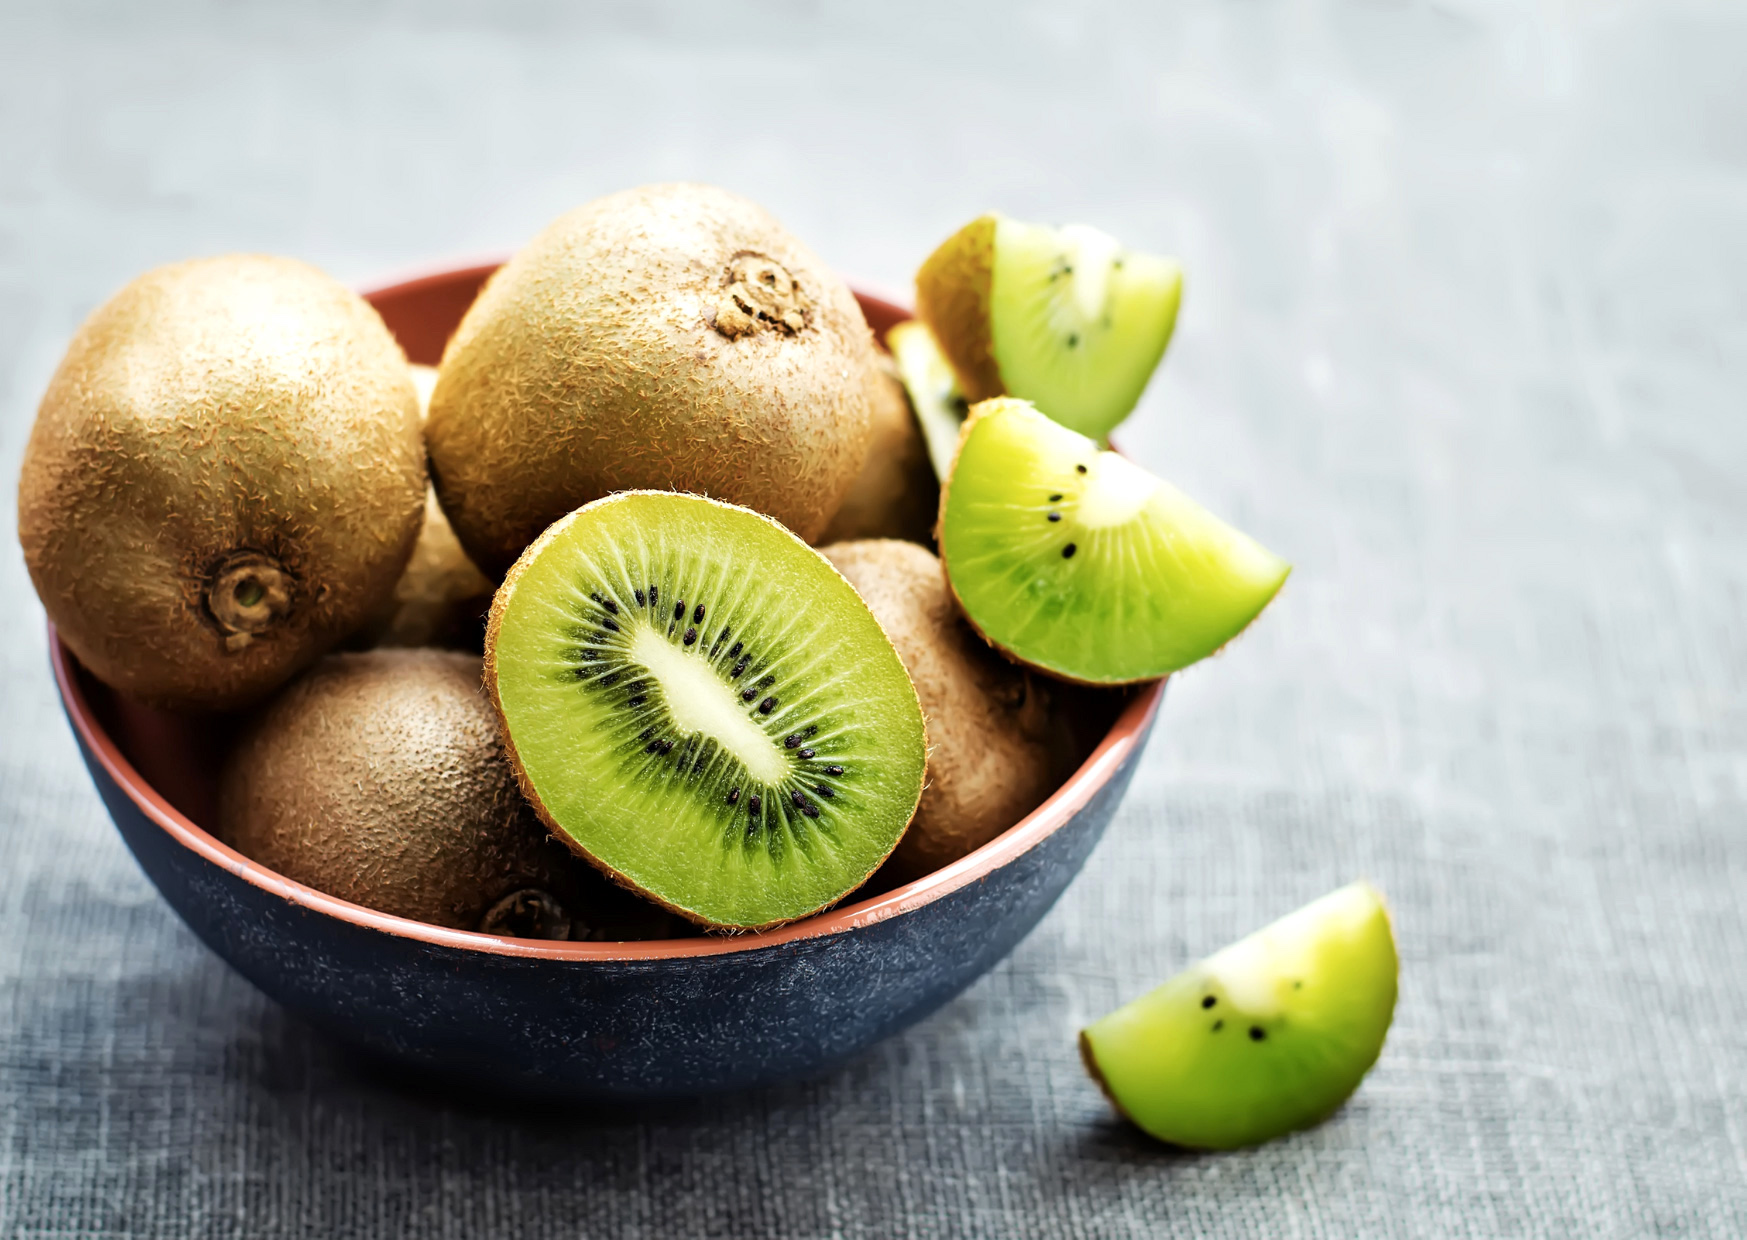 Kiwifruit: the superfood